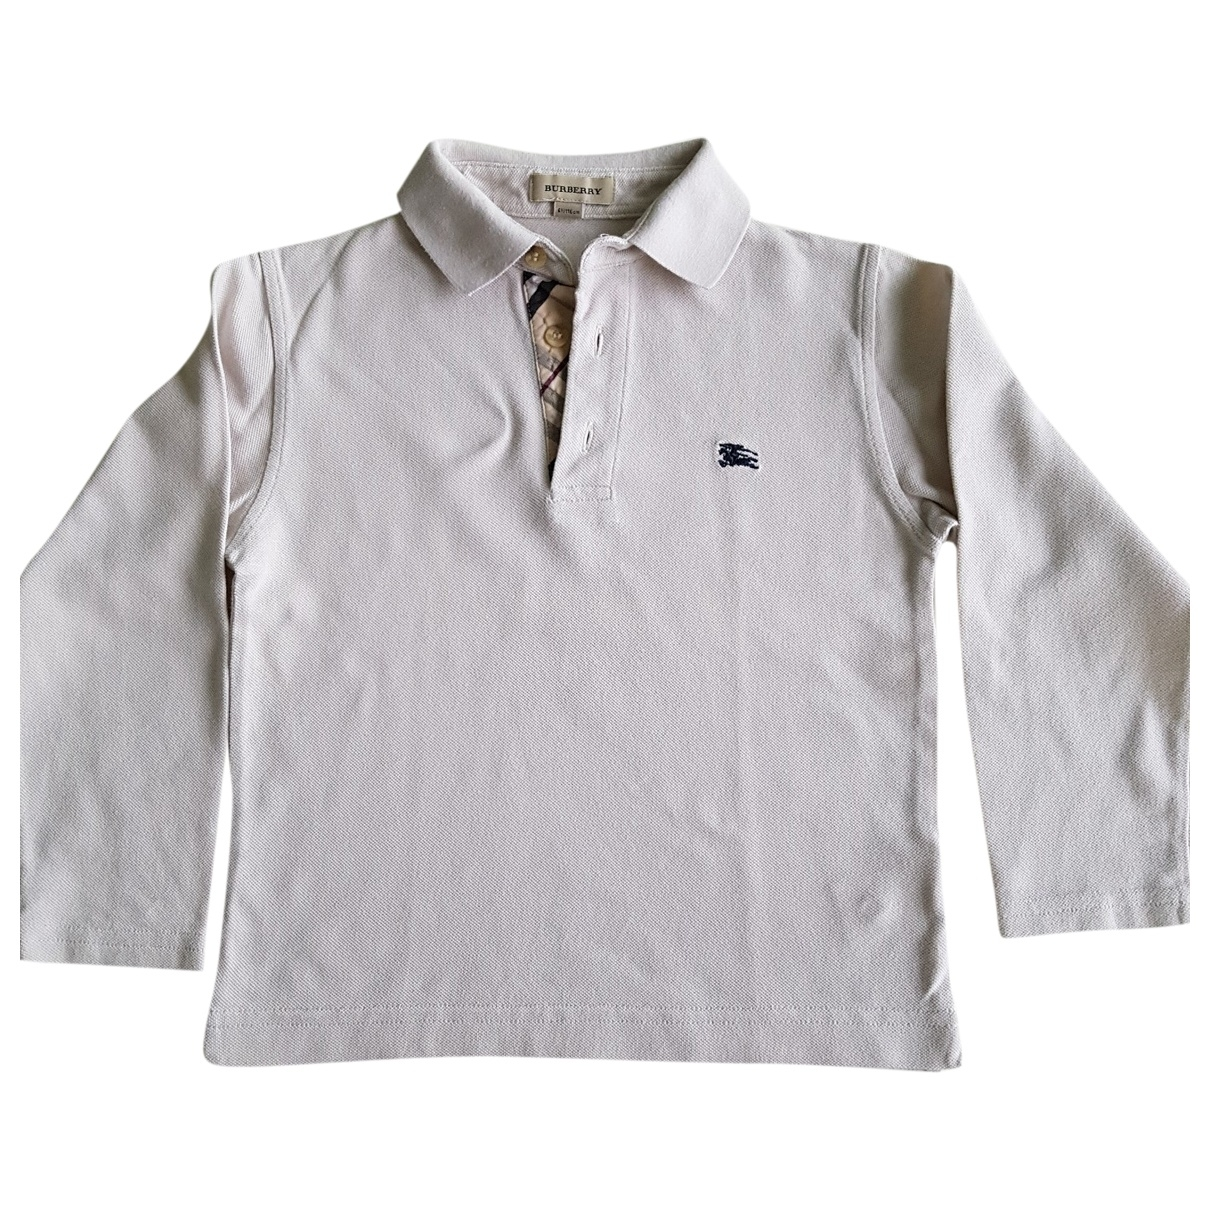 Burberry \N Beige Cotton  top for Kids 6 years - up to 114cm FR